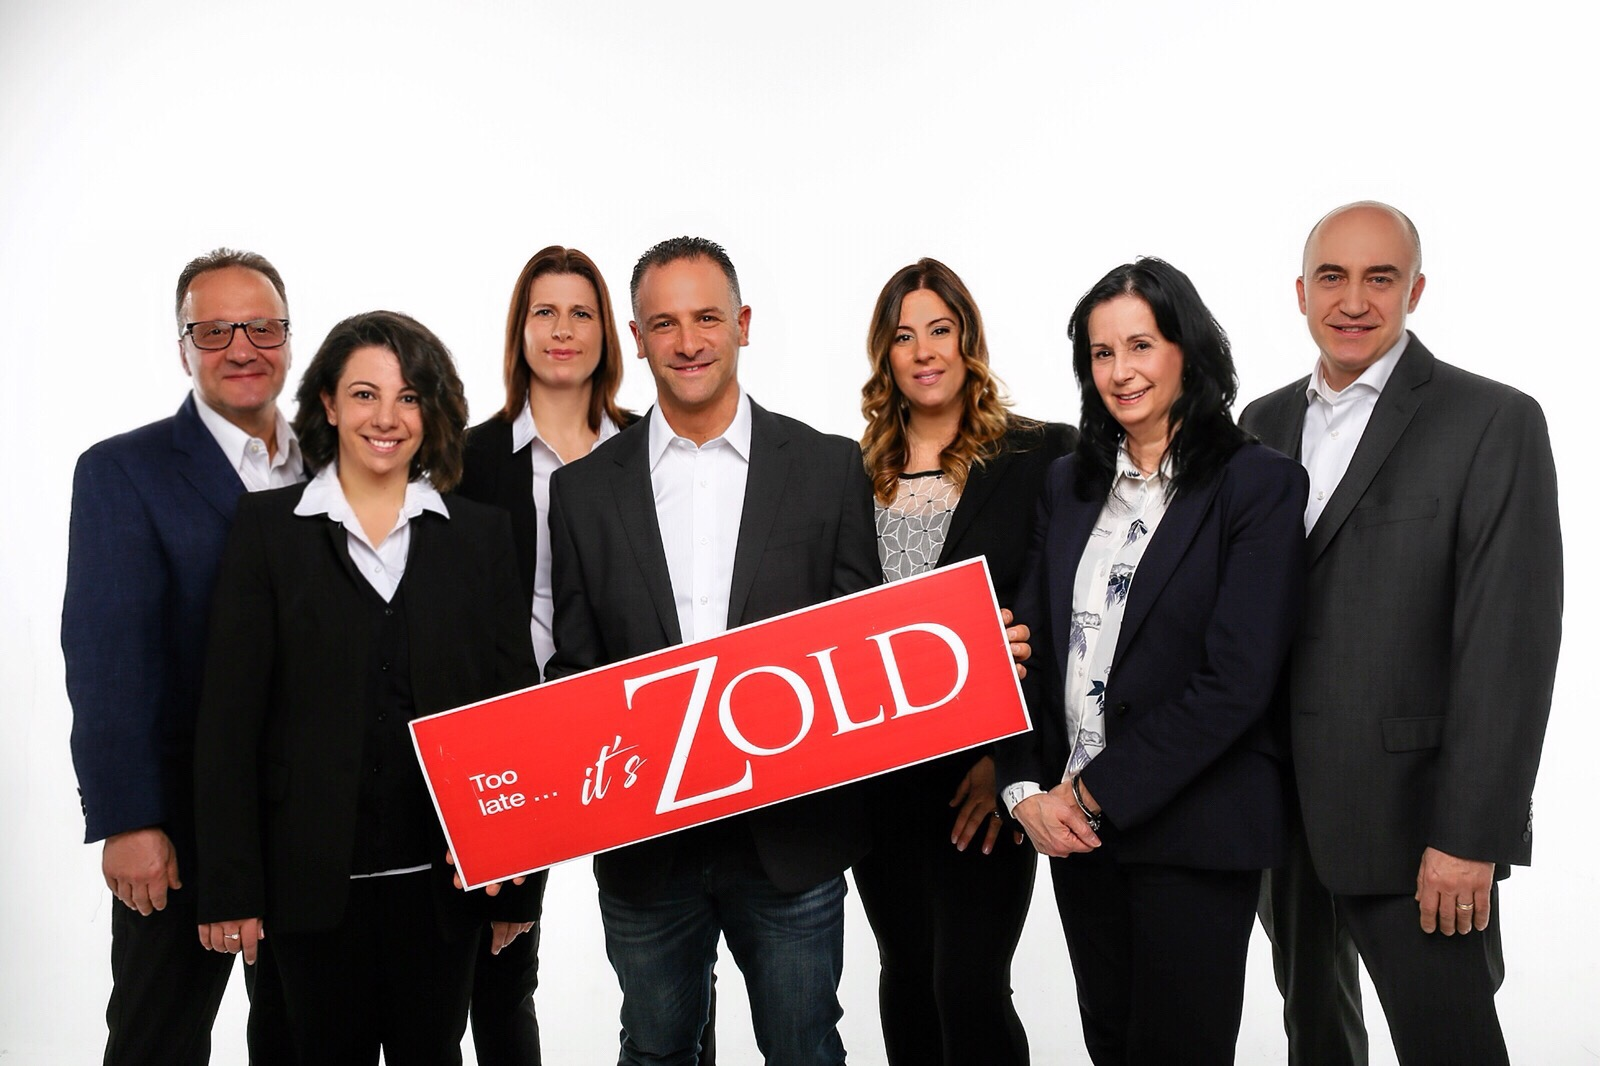 Team Zold, Toronto Real Estate Representatives